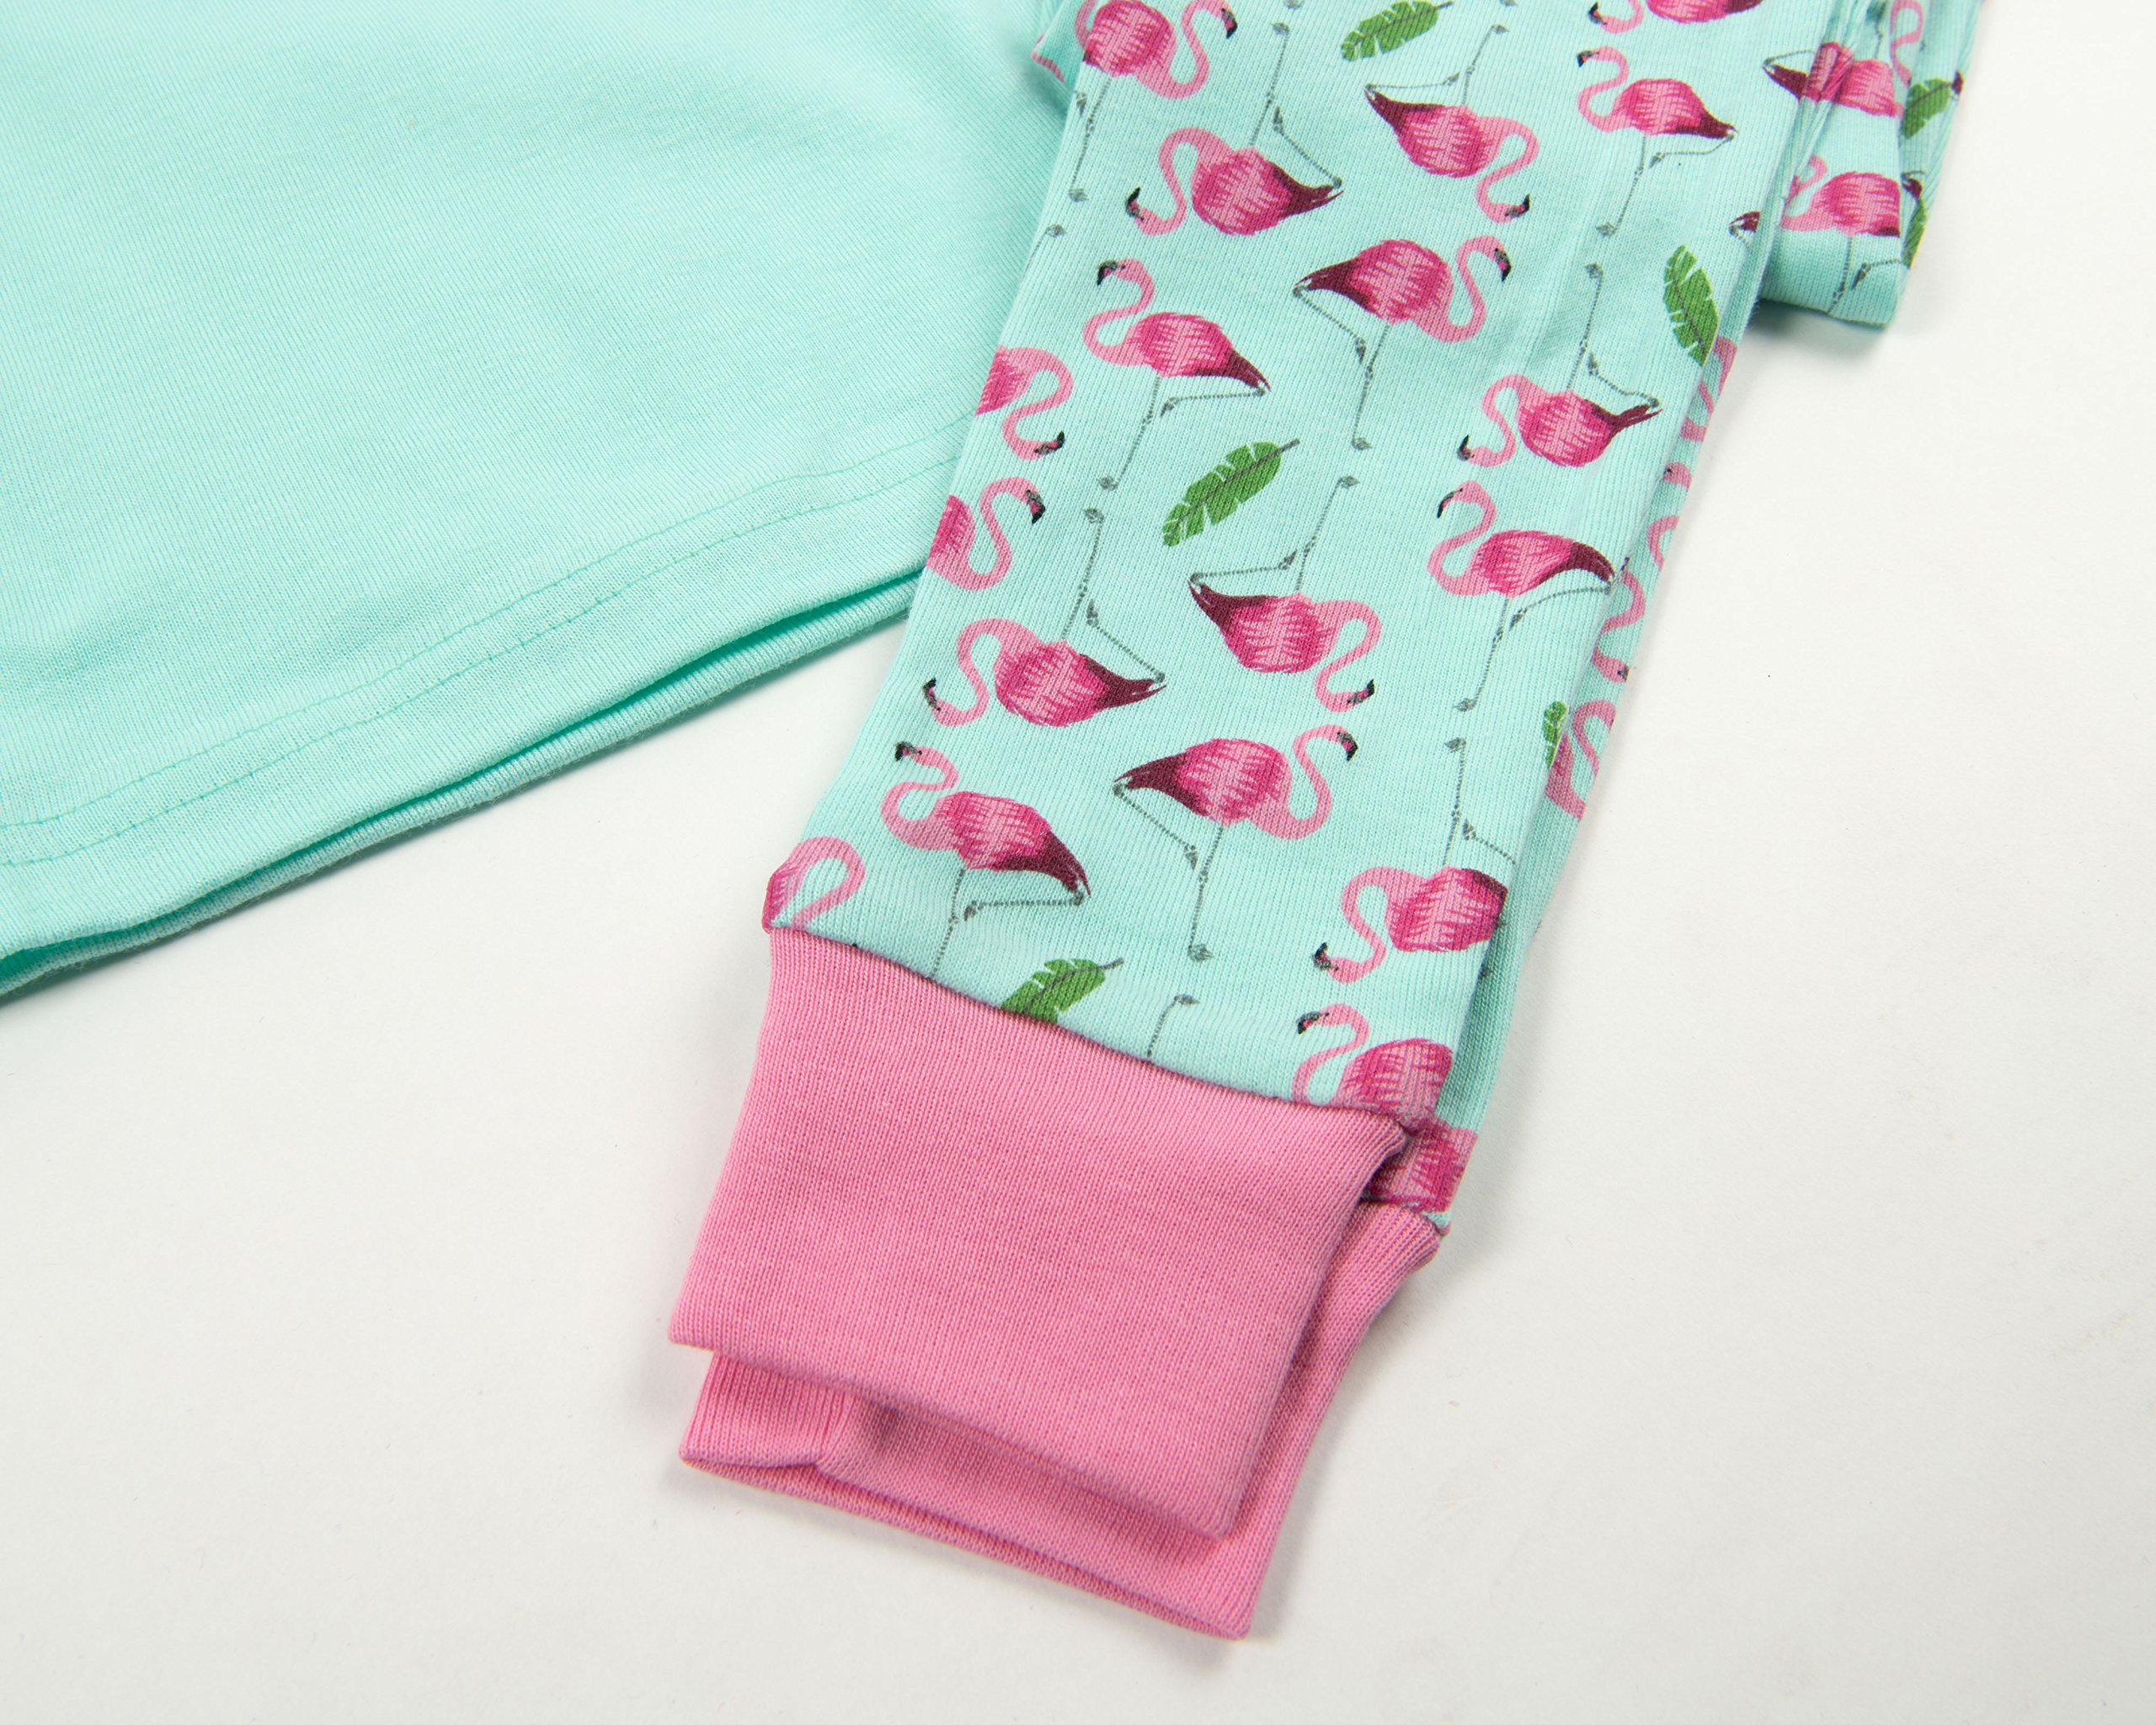 Leveret Matching Doll & Girl Flamingo 2 Piece Pajama Set 100% Cotton Size 10 Years by Leveret (Image #3)